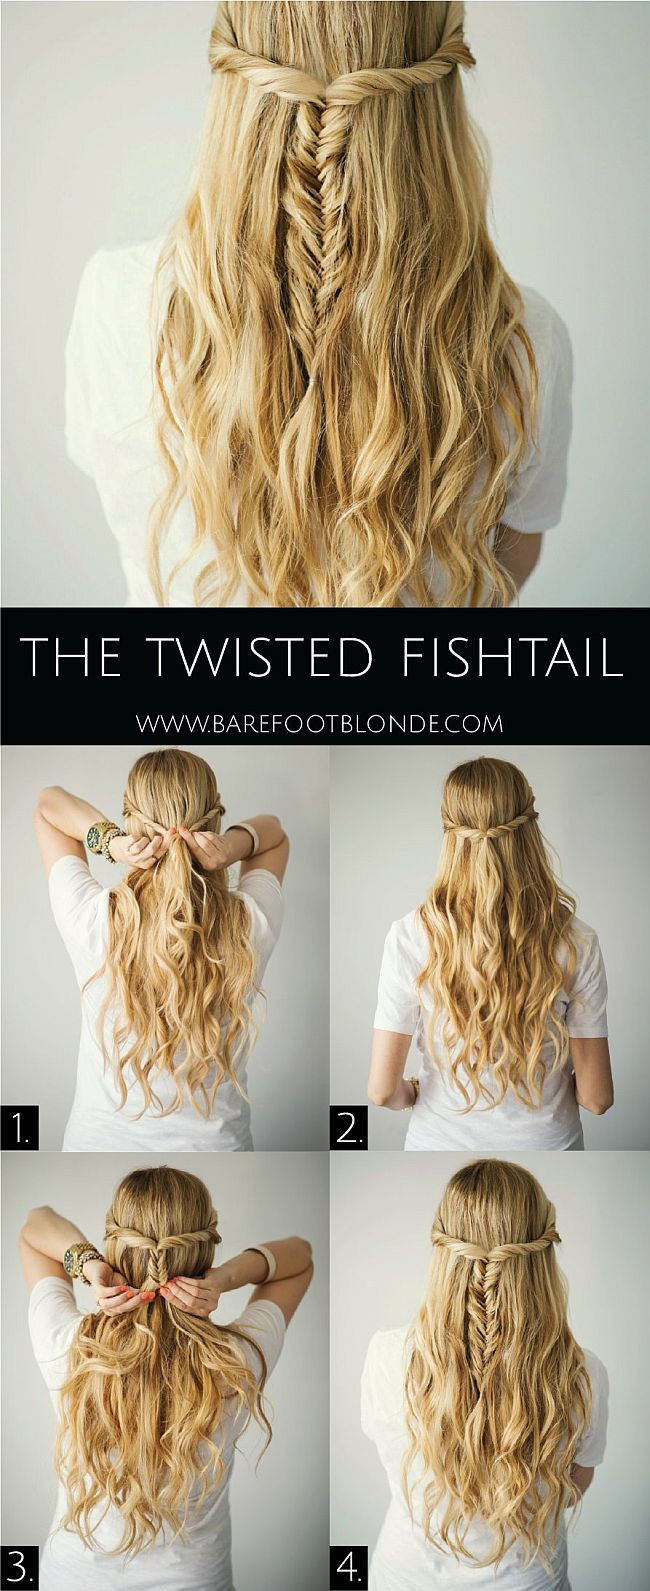 15 Stylish Step-by-Move #Hairstyle Tutorials